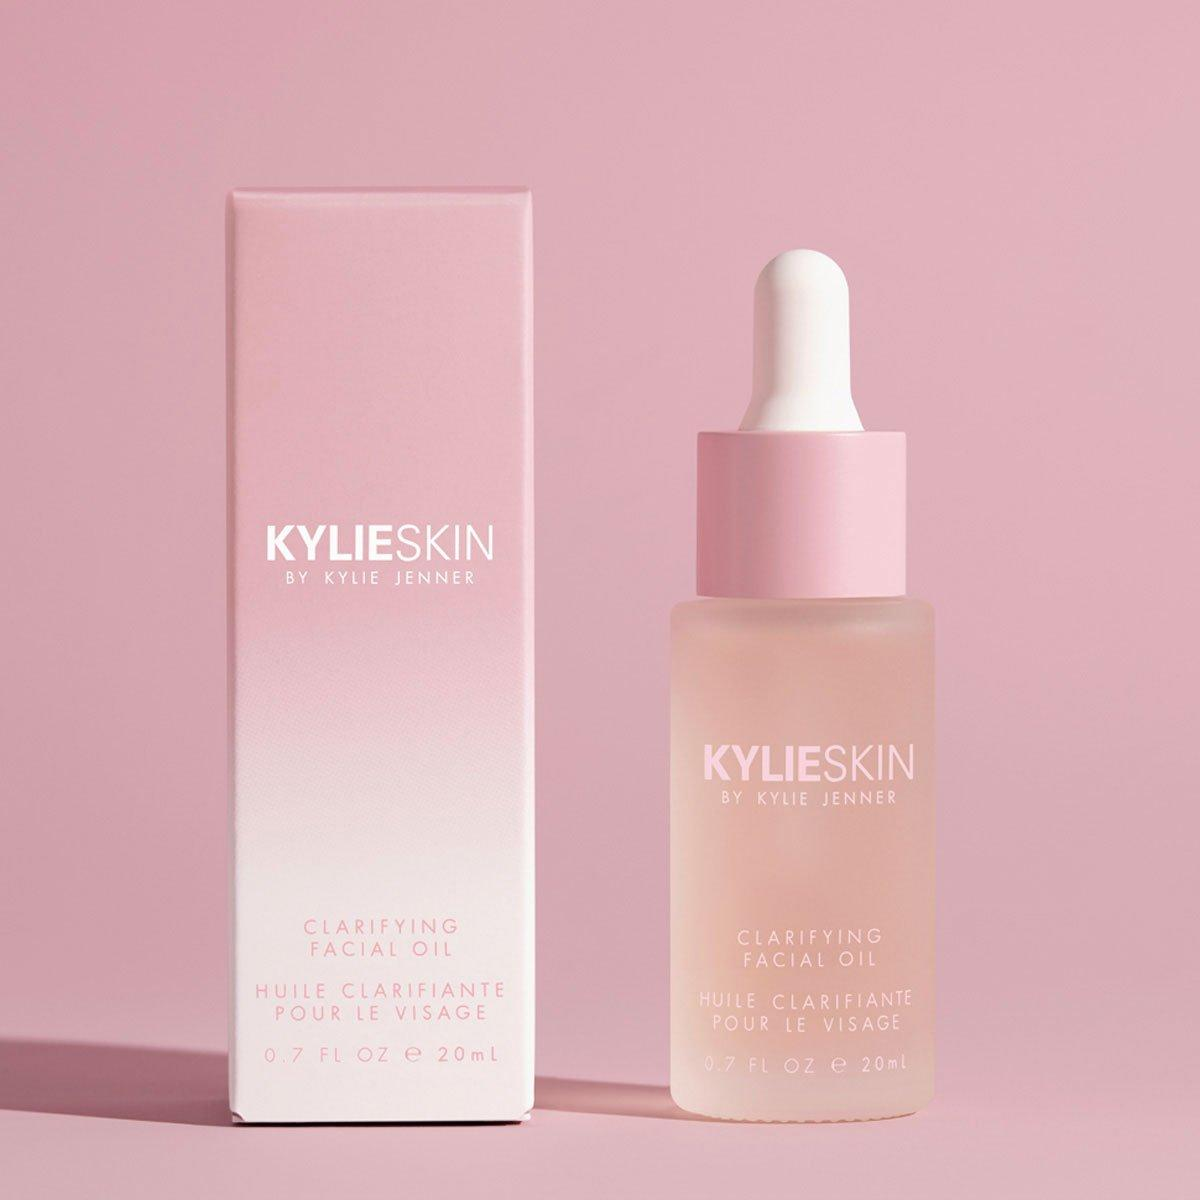 Kylie Skin Clarifying Collection Clarifying Facial Oil